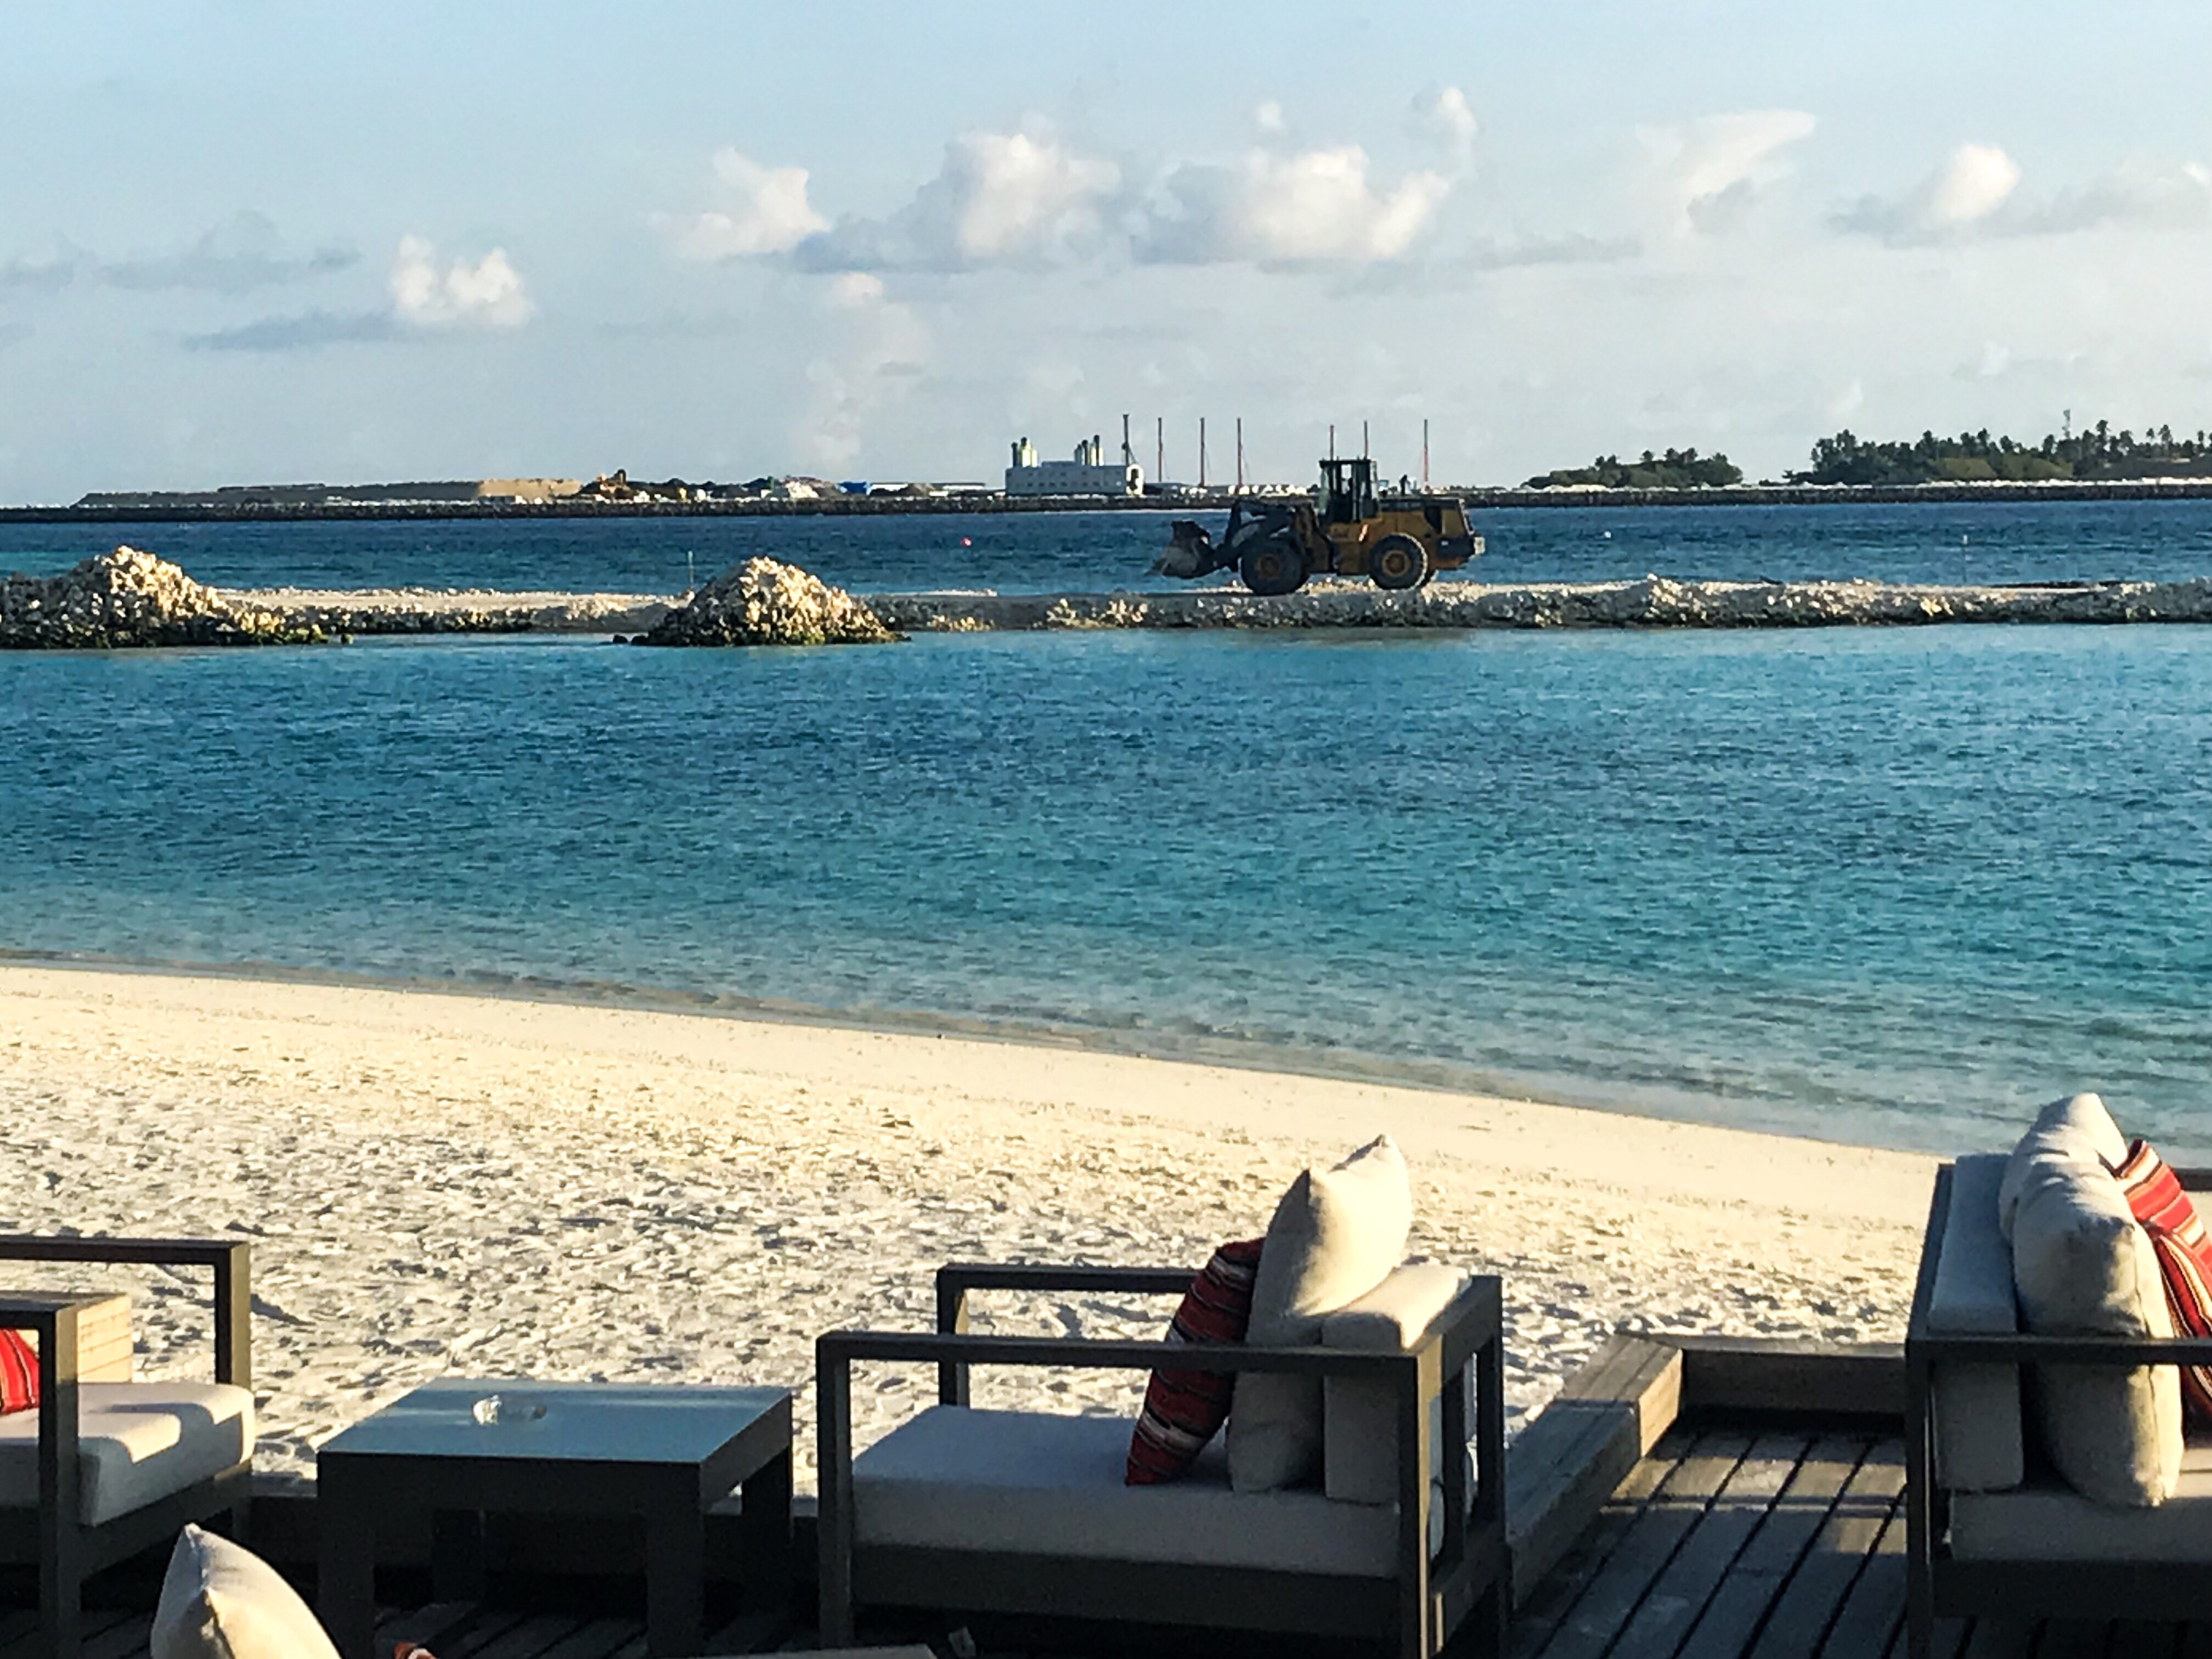 The building work at the Sheraton Maldives spoilt the view a bit but not the overall experience